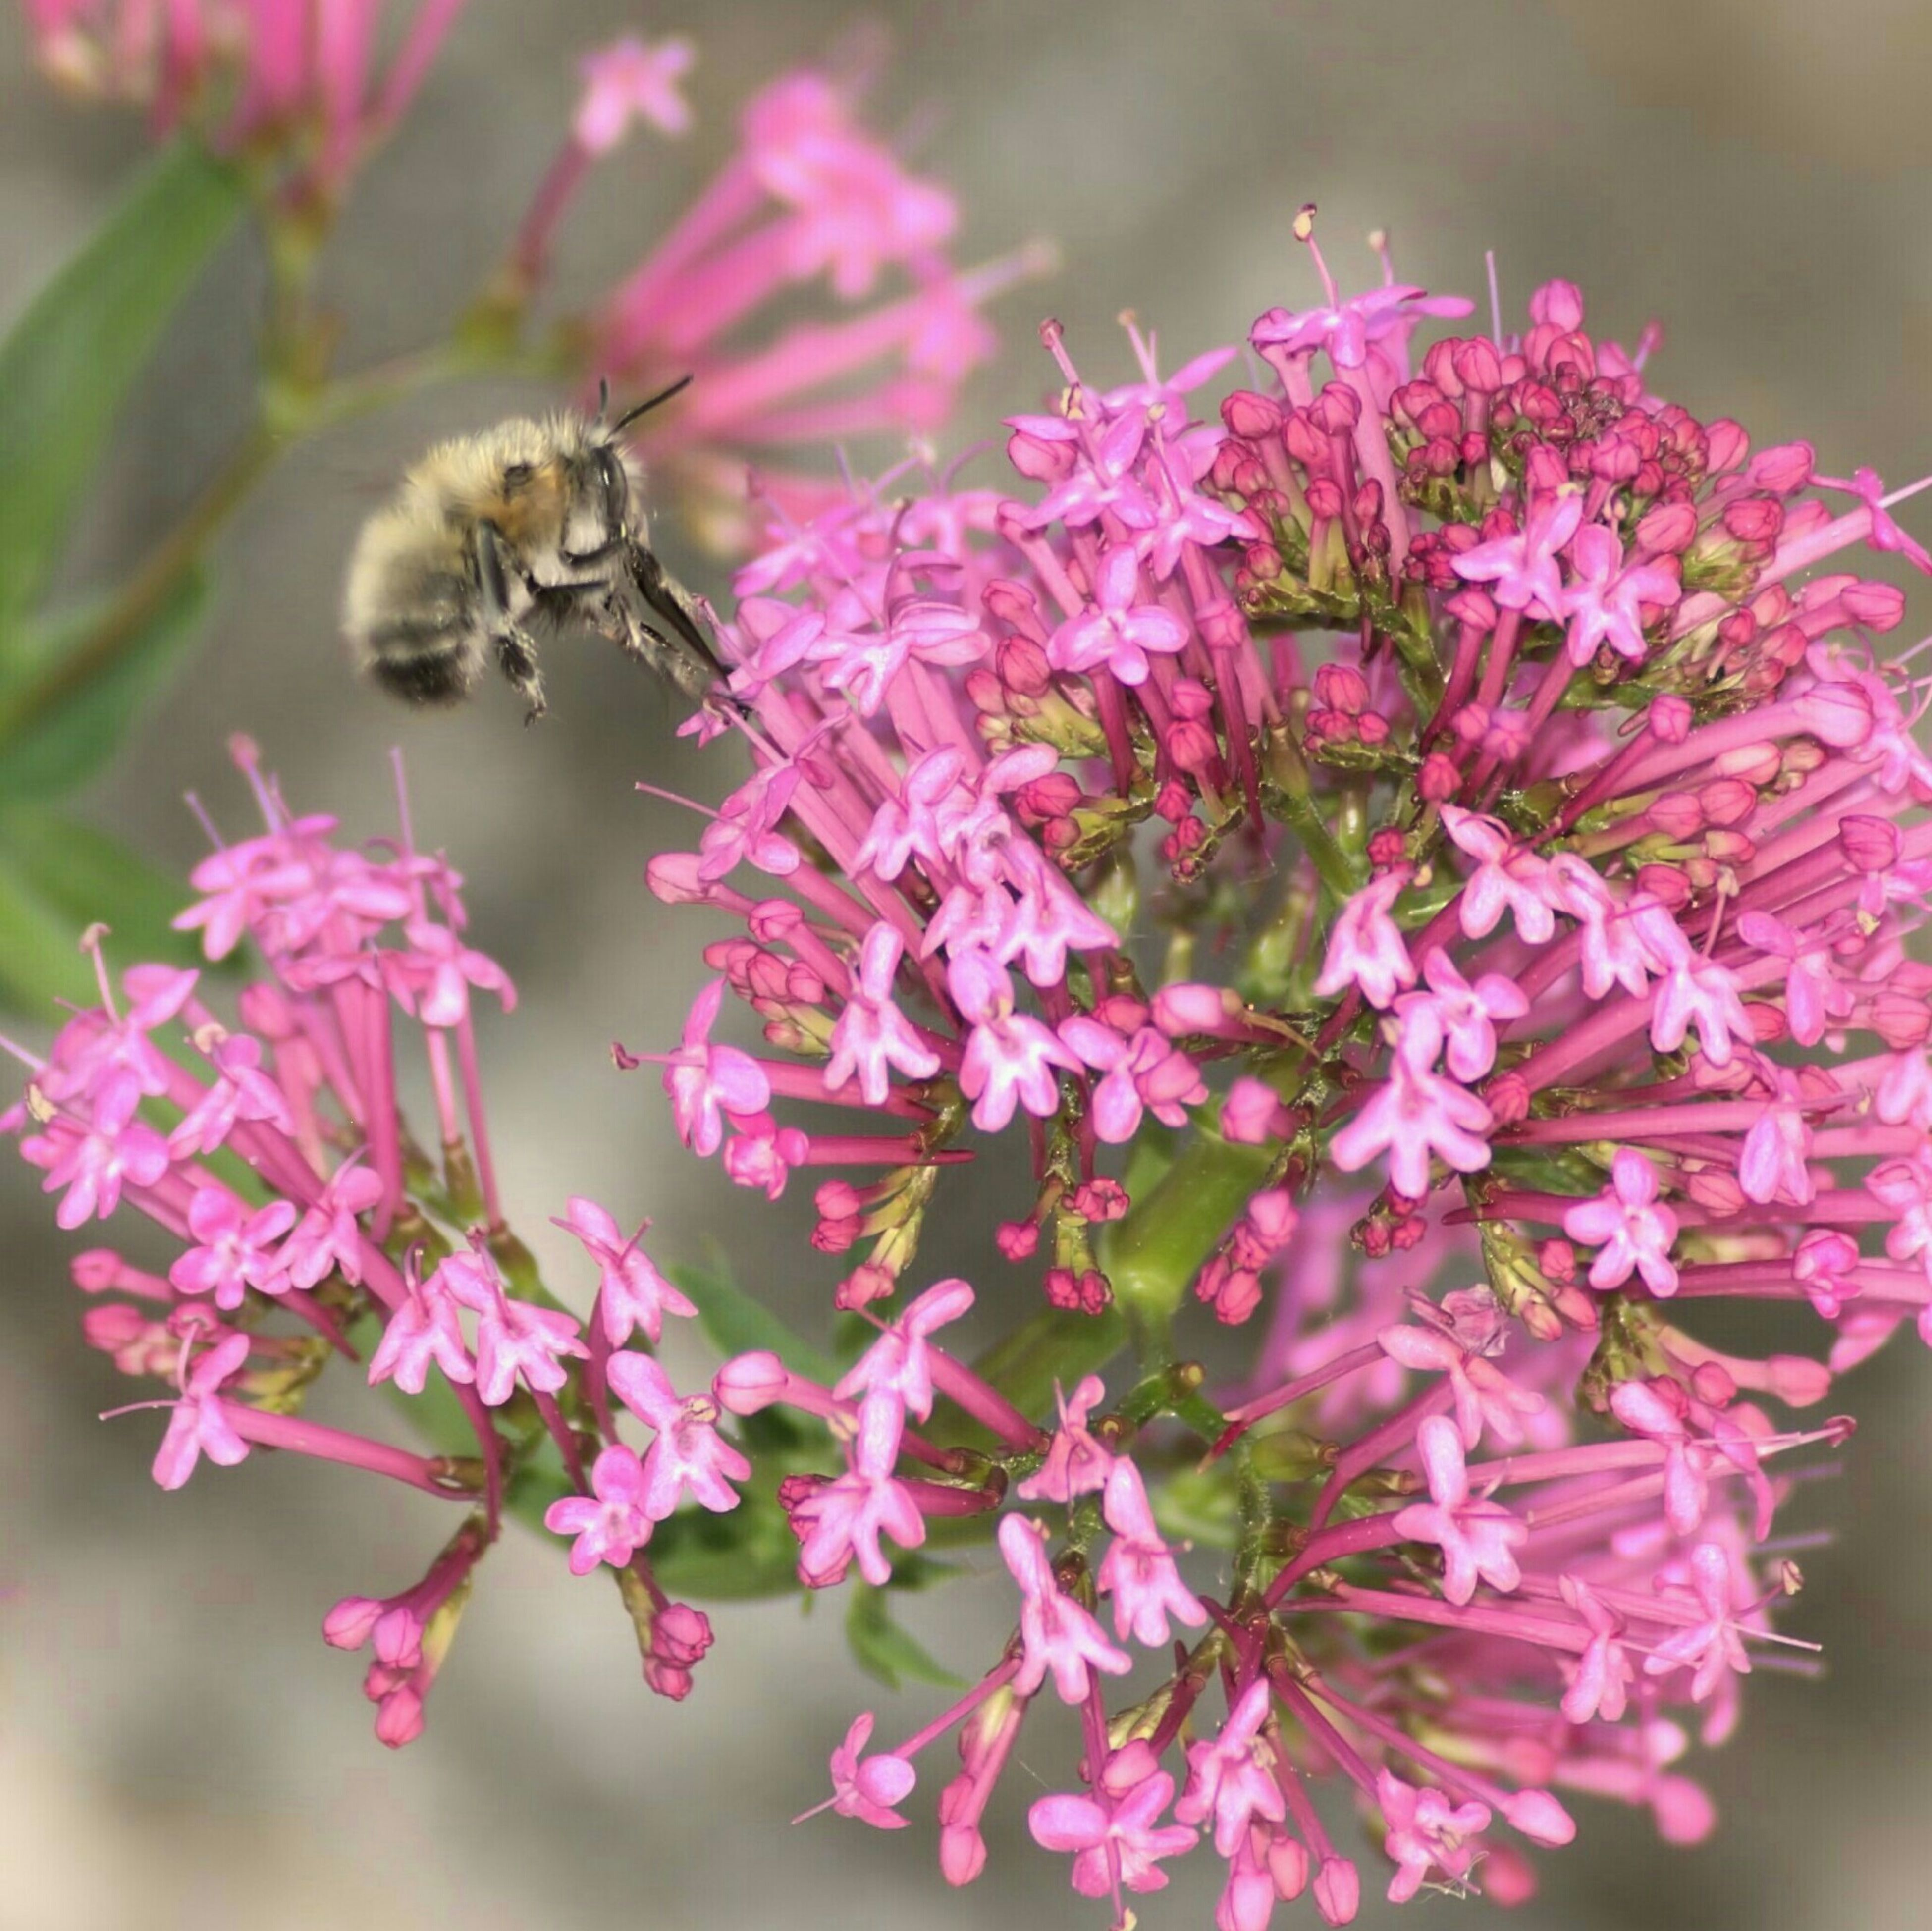 flower, animal themes, animals in the wild, one animal, insect, wildlife, freshness, fragility, pollination, close-up, beauty in nature, focus on foreground, pink color, bee, growth, nature, petal, selective focus, symbiotic relationship, plant